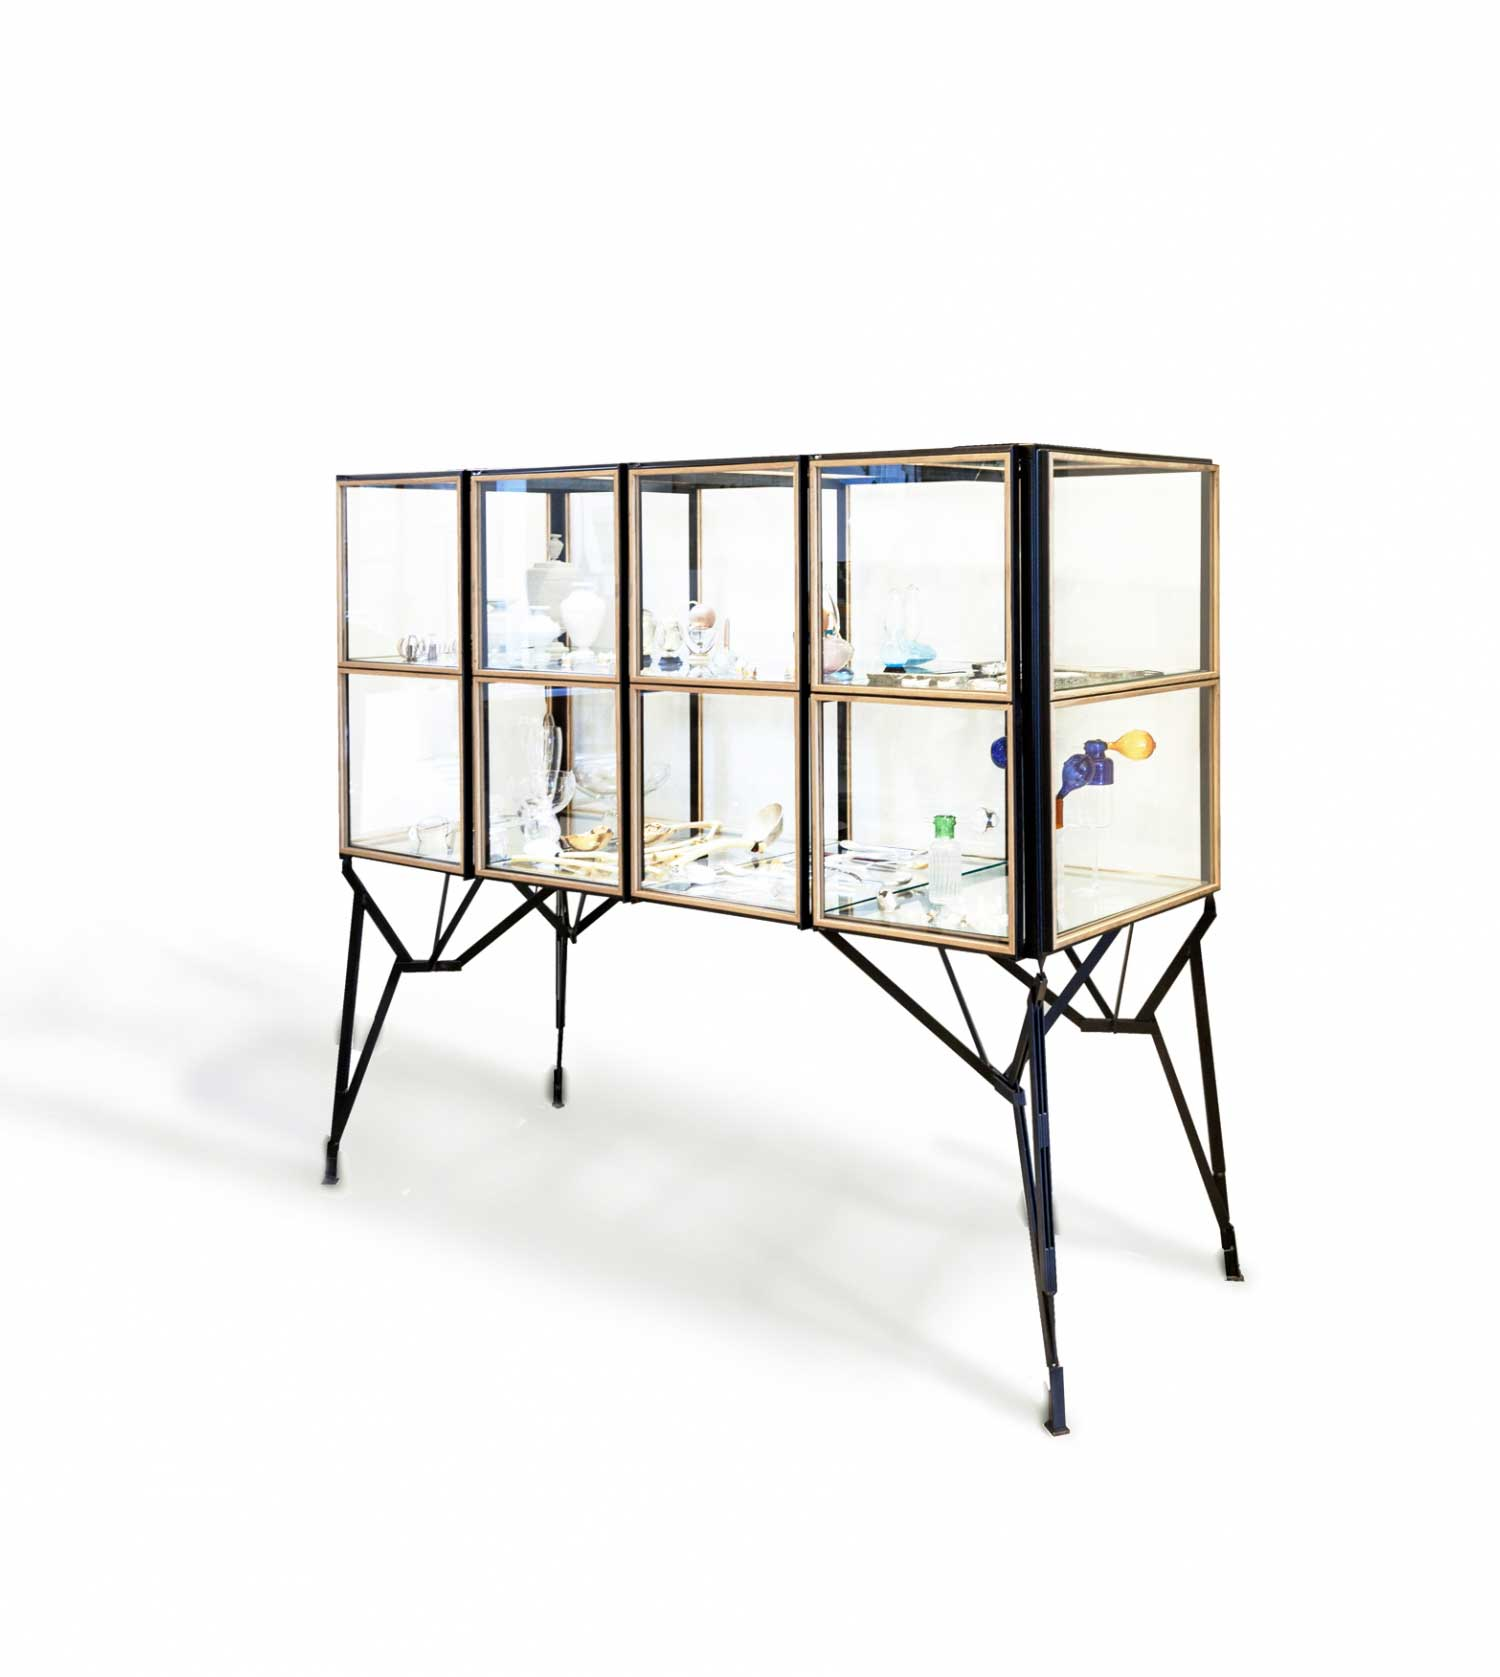 Milantrace 2014 / Ventura Lambrate, Cabinet by Paul Heijnen Studio | Yellowtrace